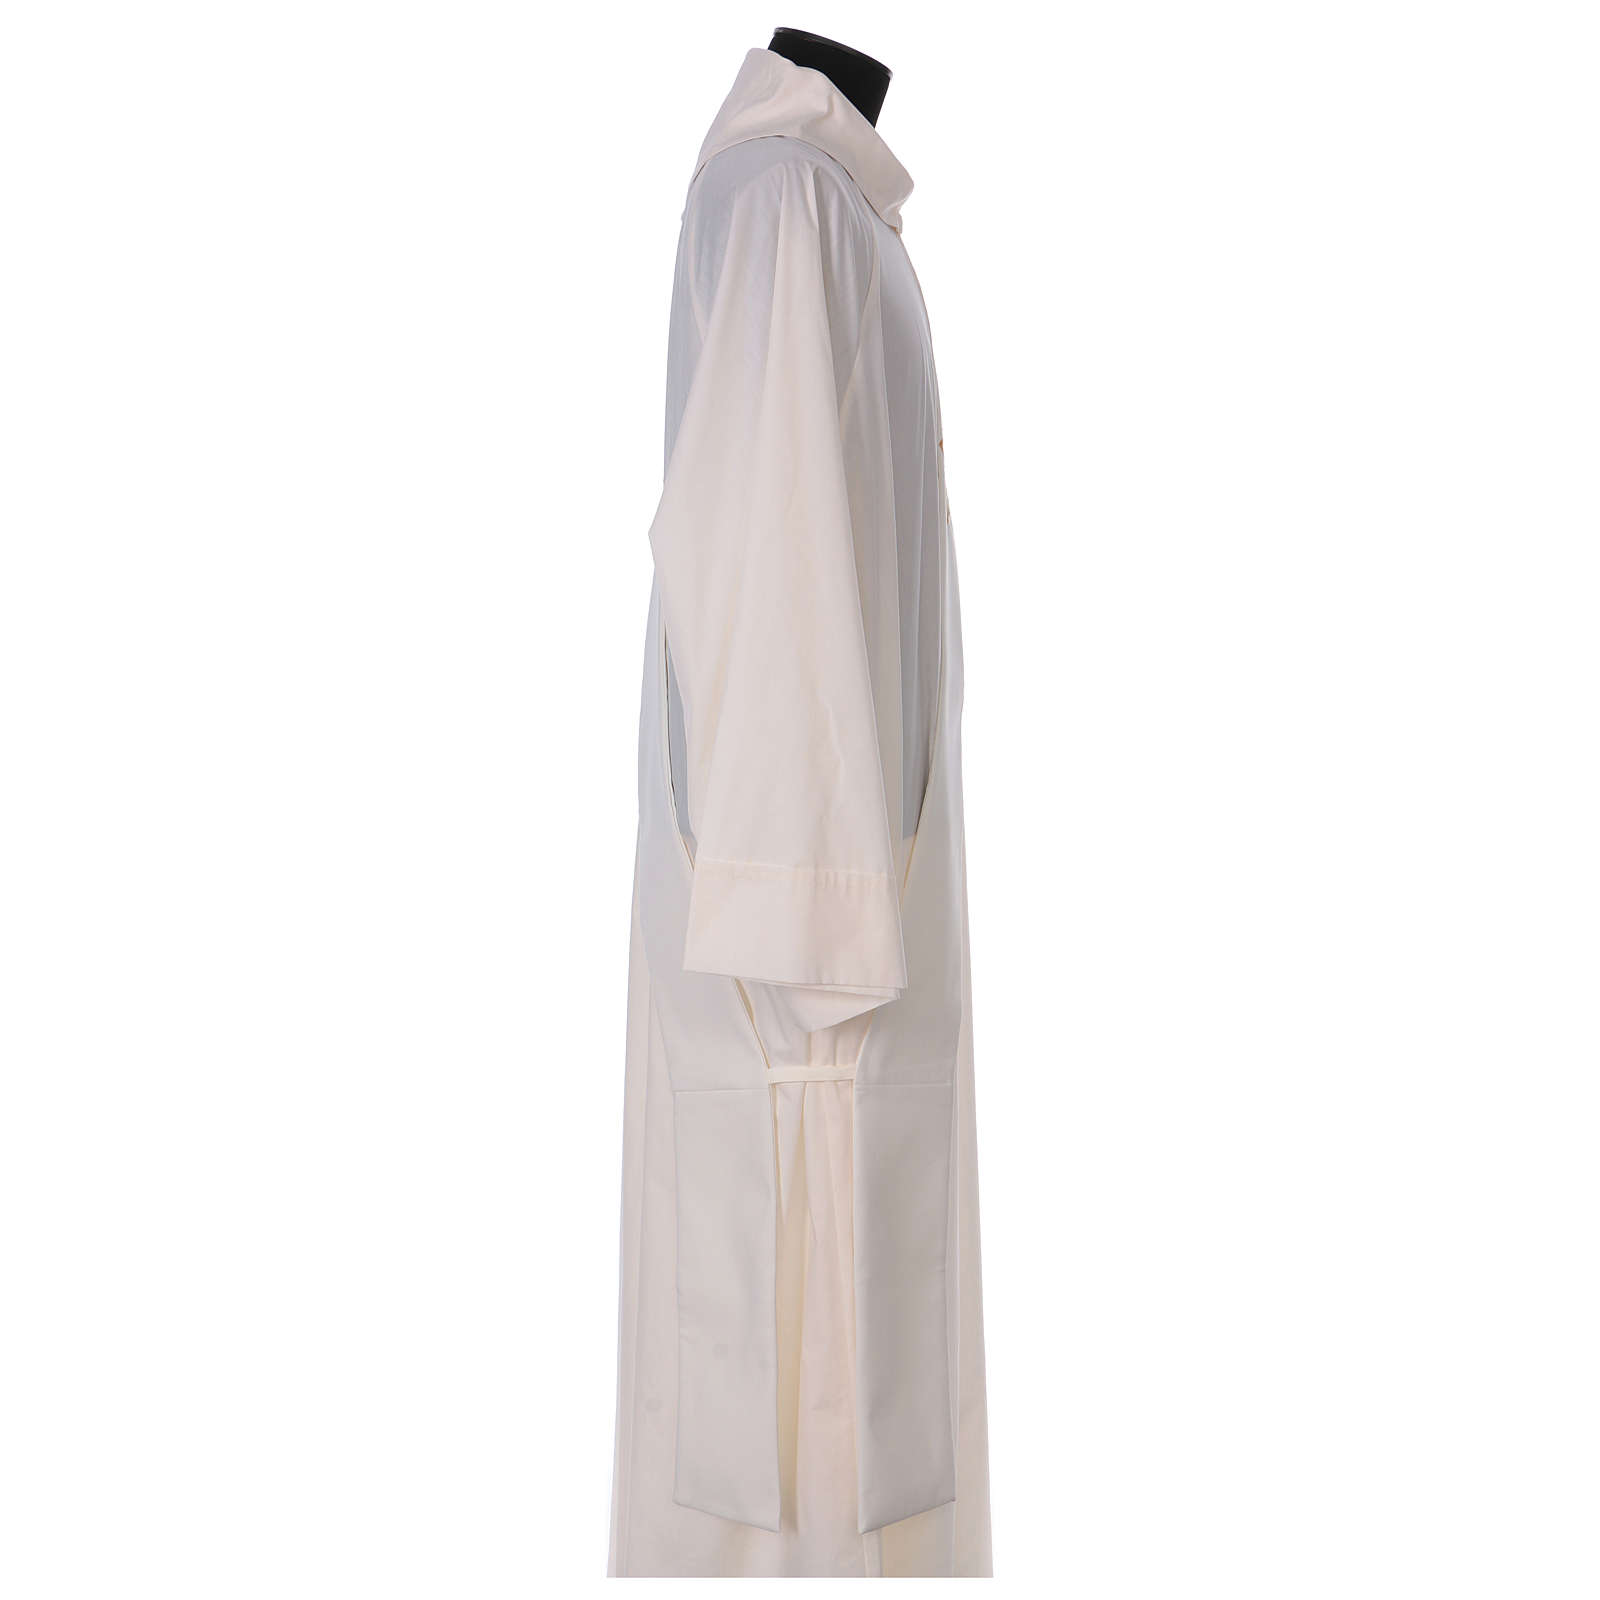 Diaconal stole, ivory colour with flower decoration and stones 80% polyester 20% wool 4